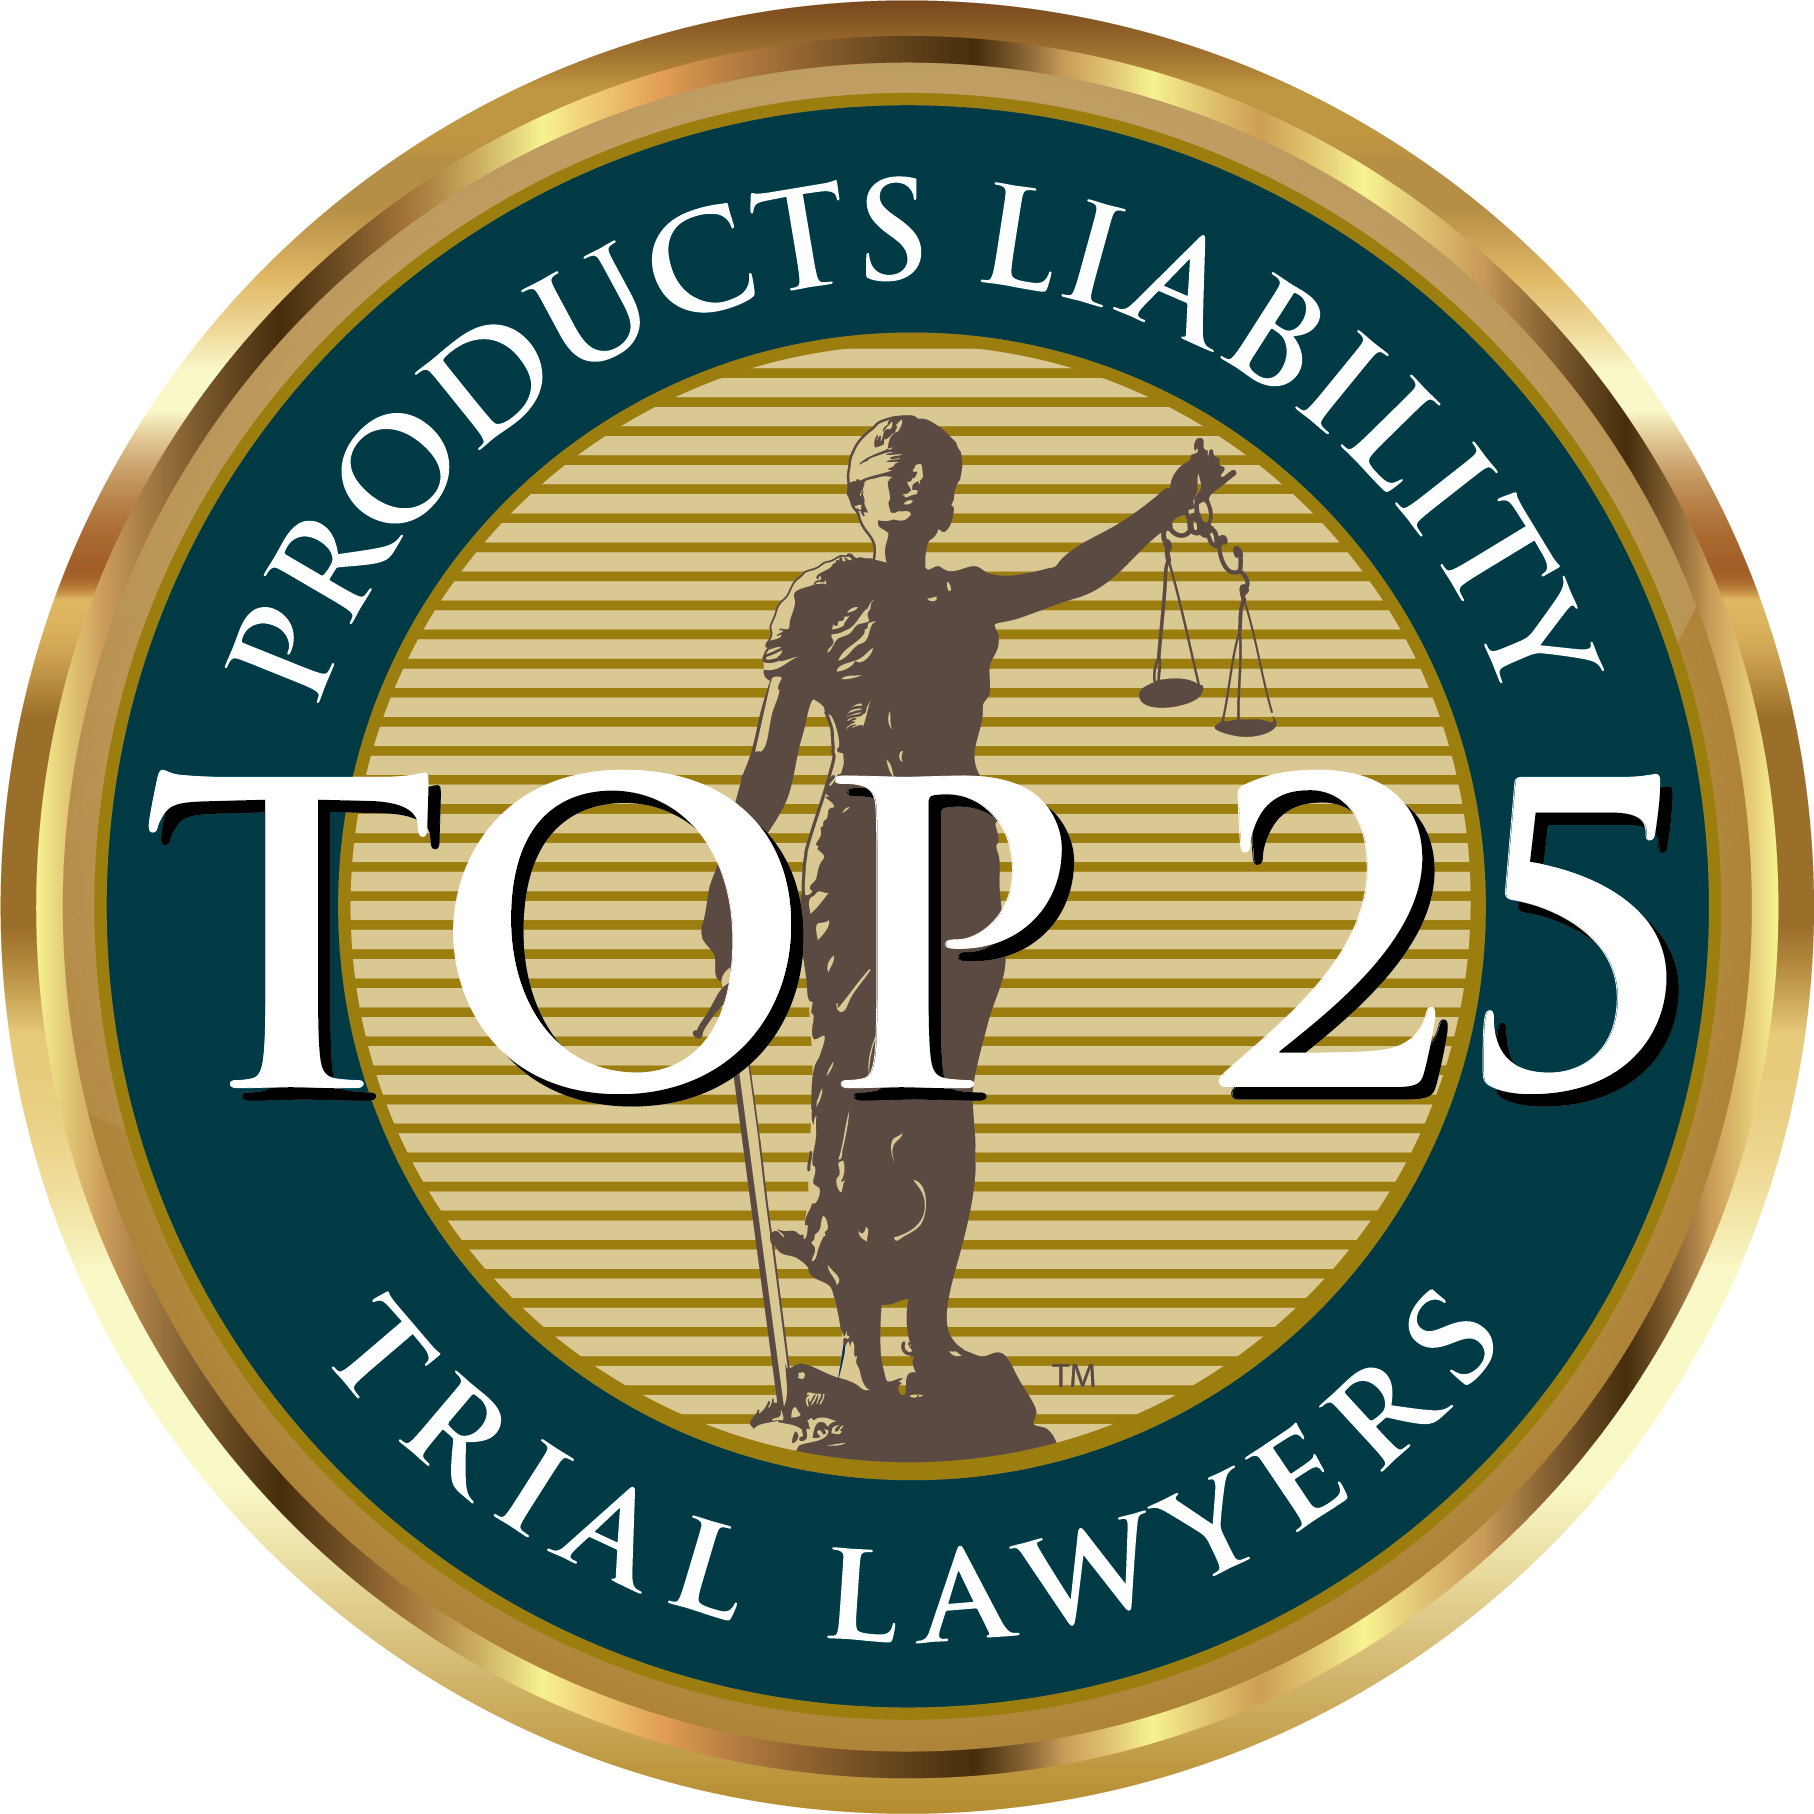 Products Liability Trial Lawyers Association